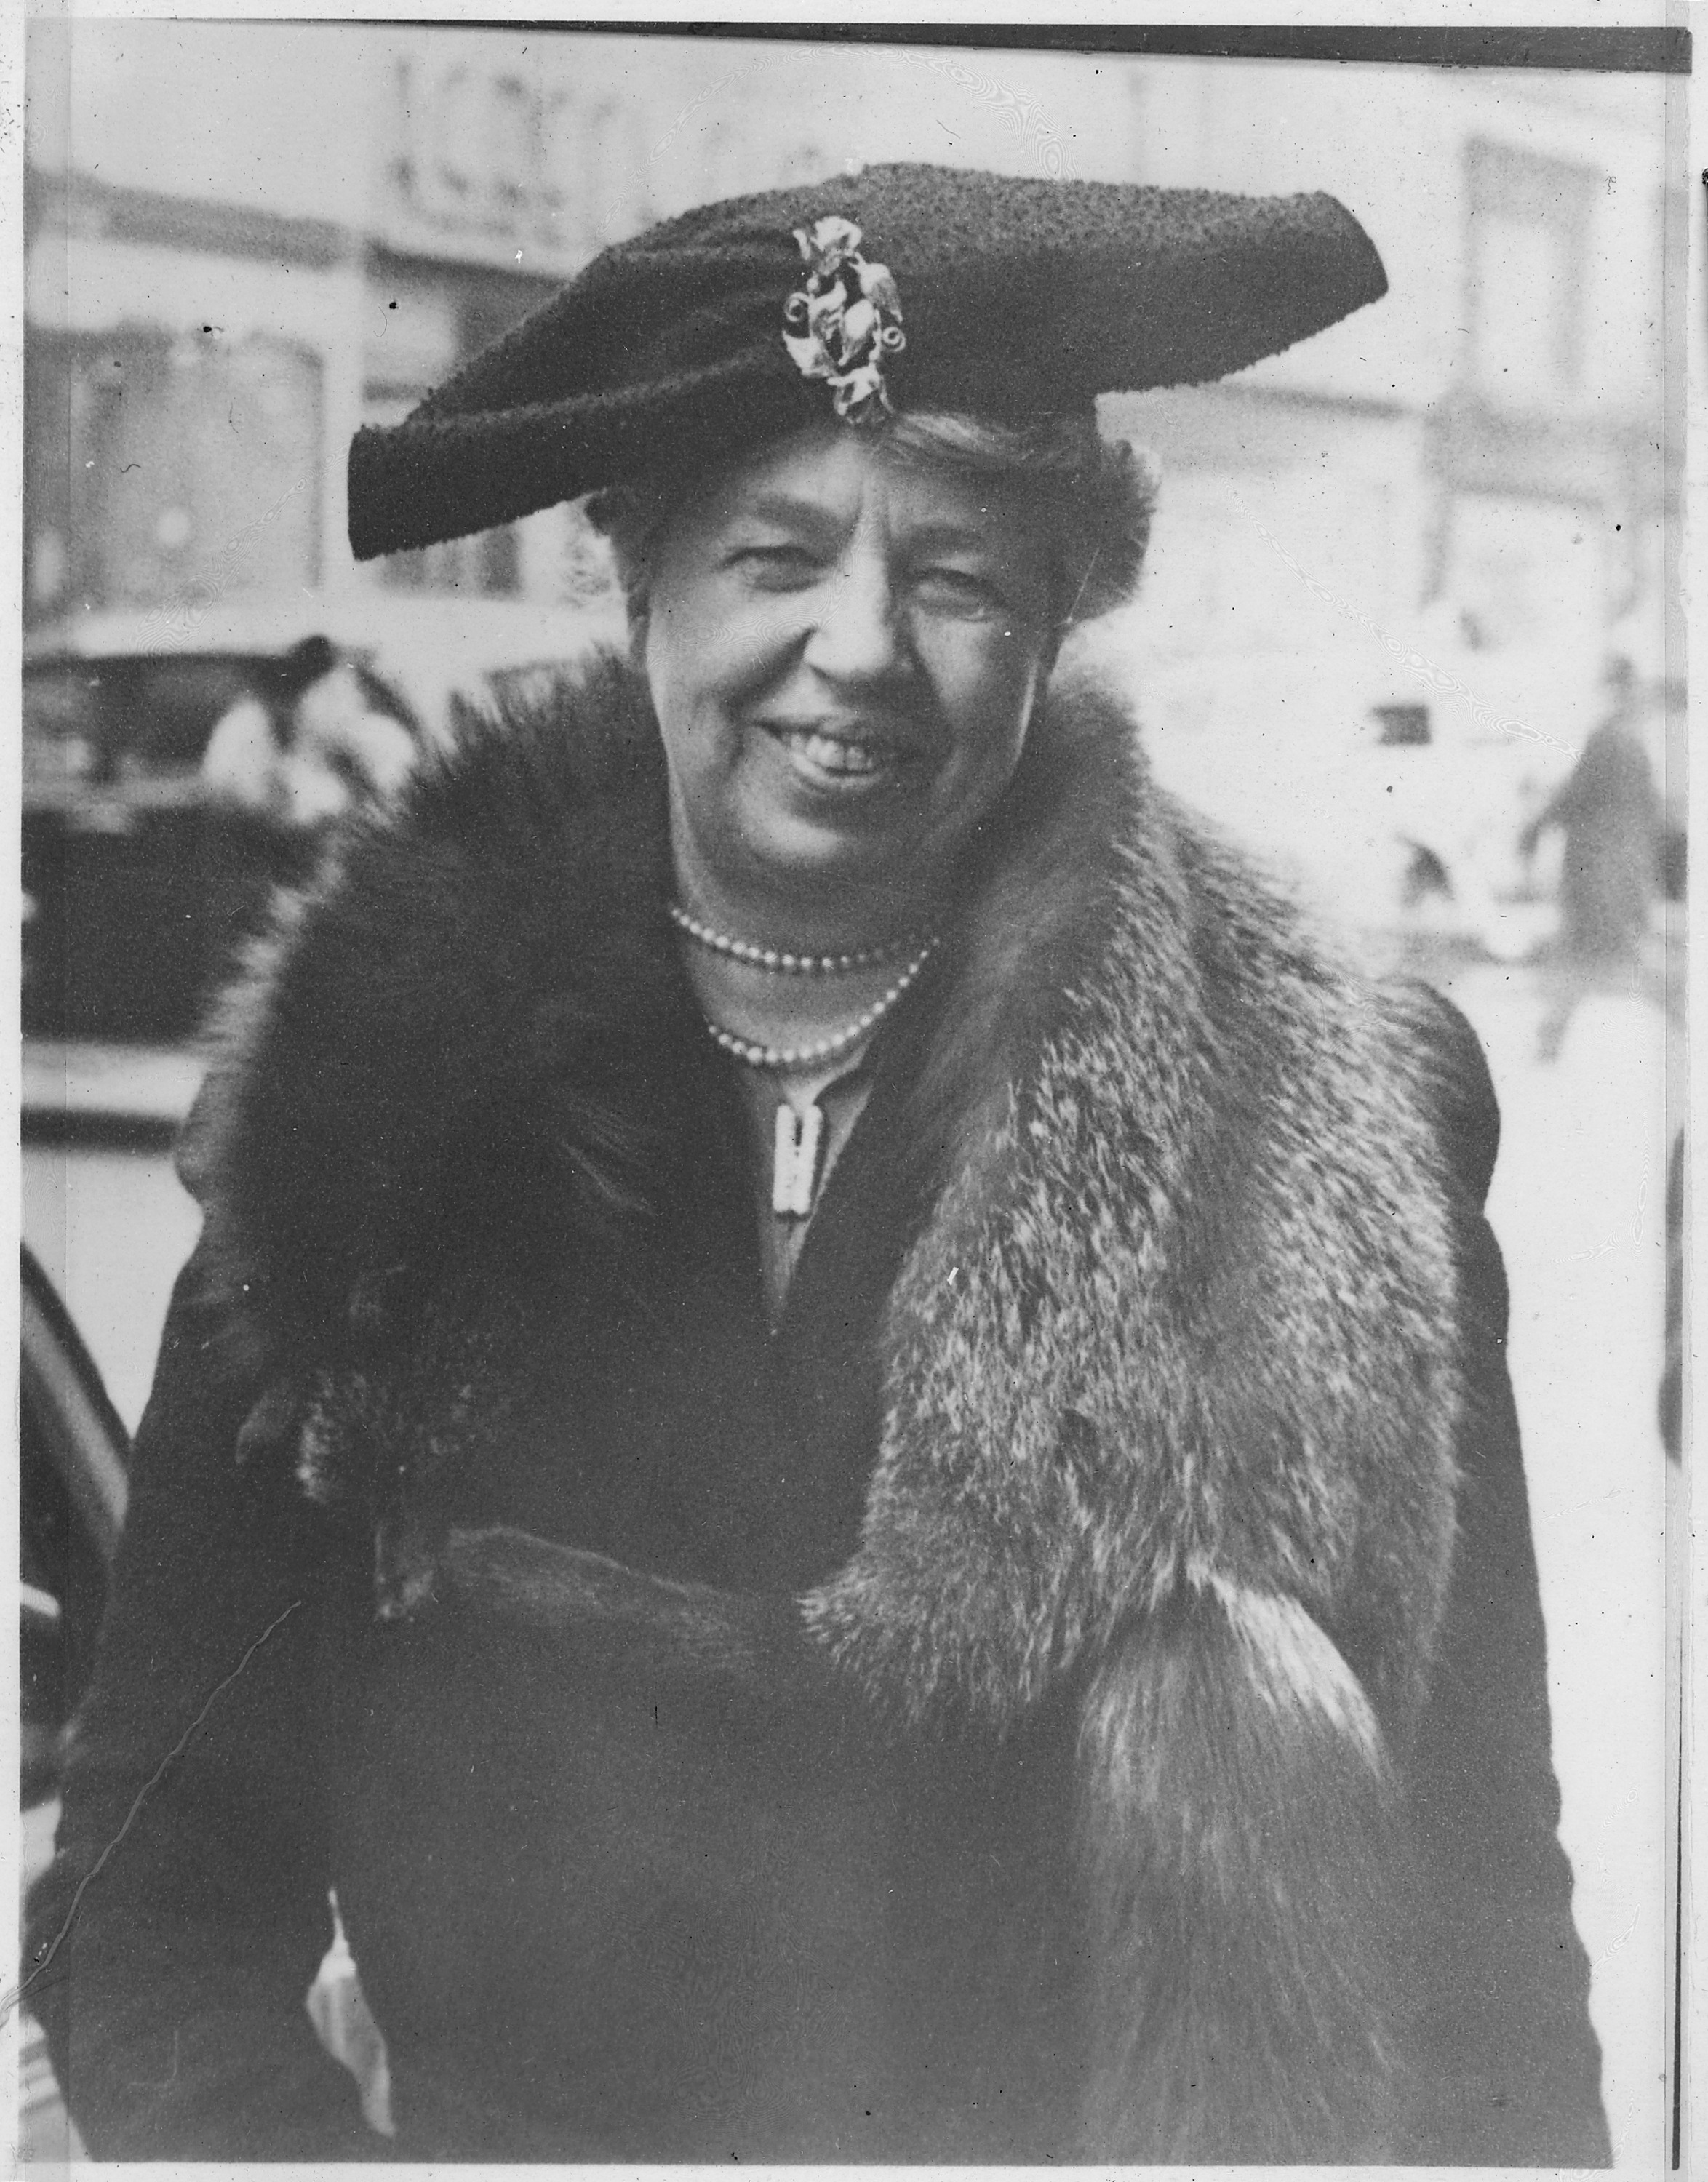 Eleanor Roosevelt in New York City - NARA - 195376.jpg